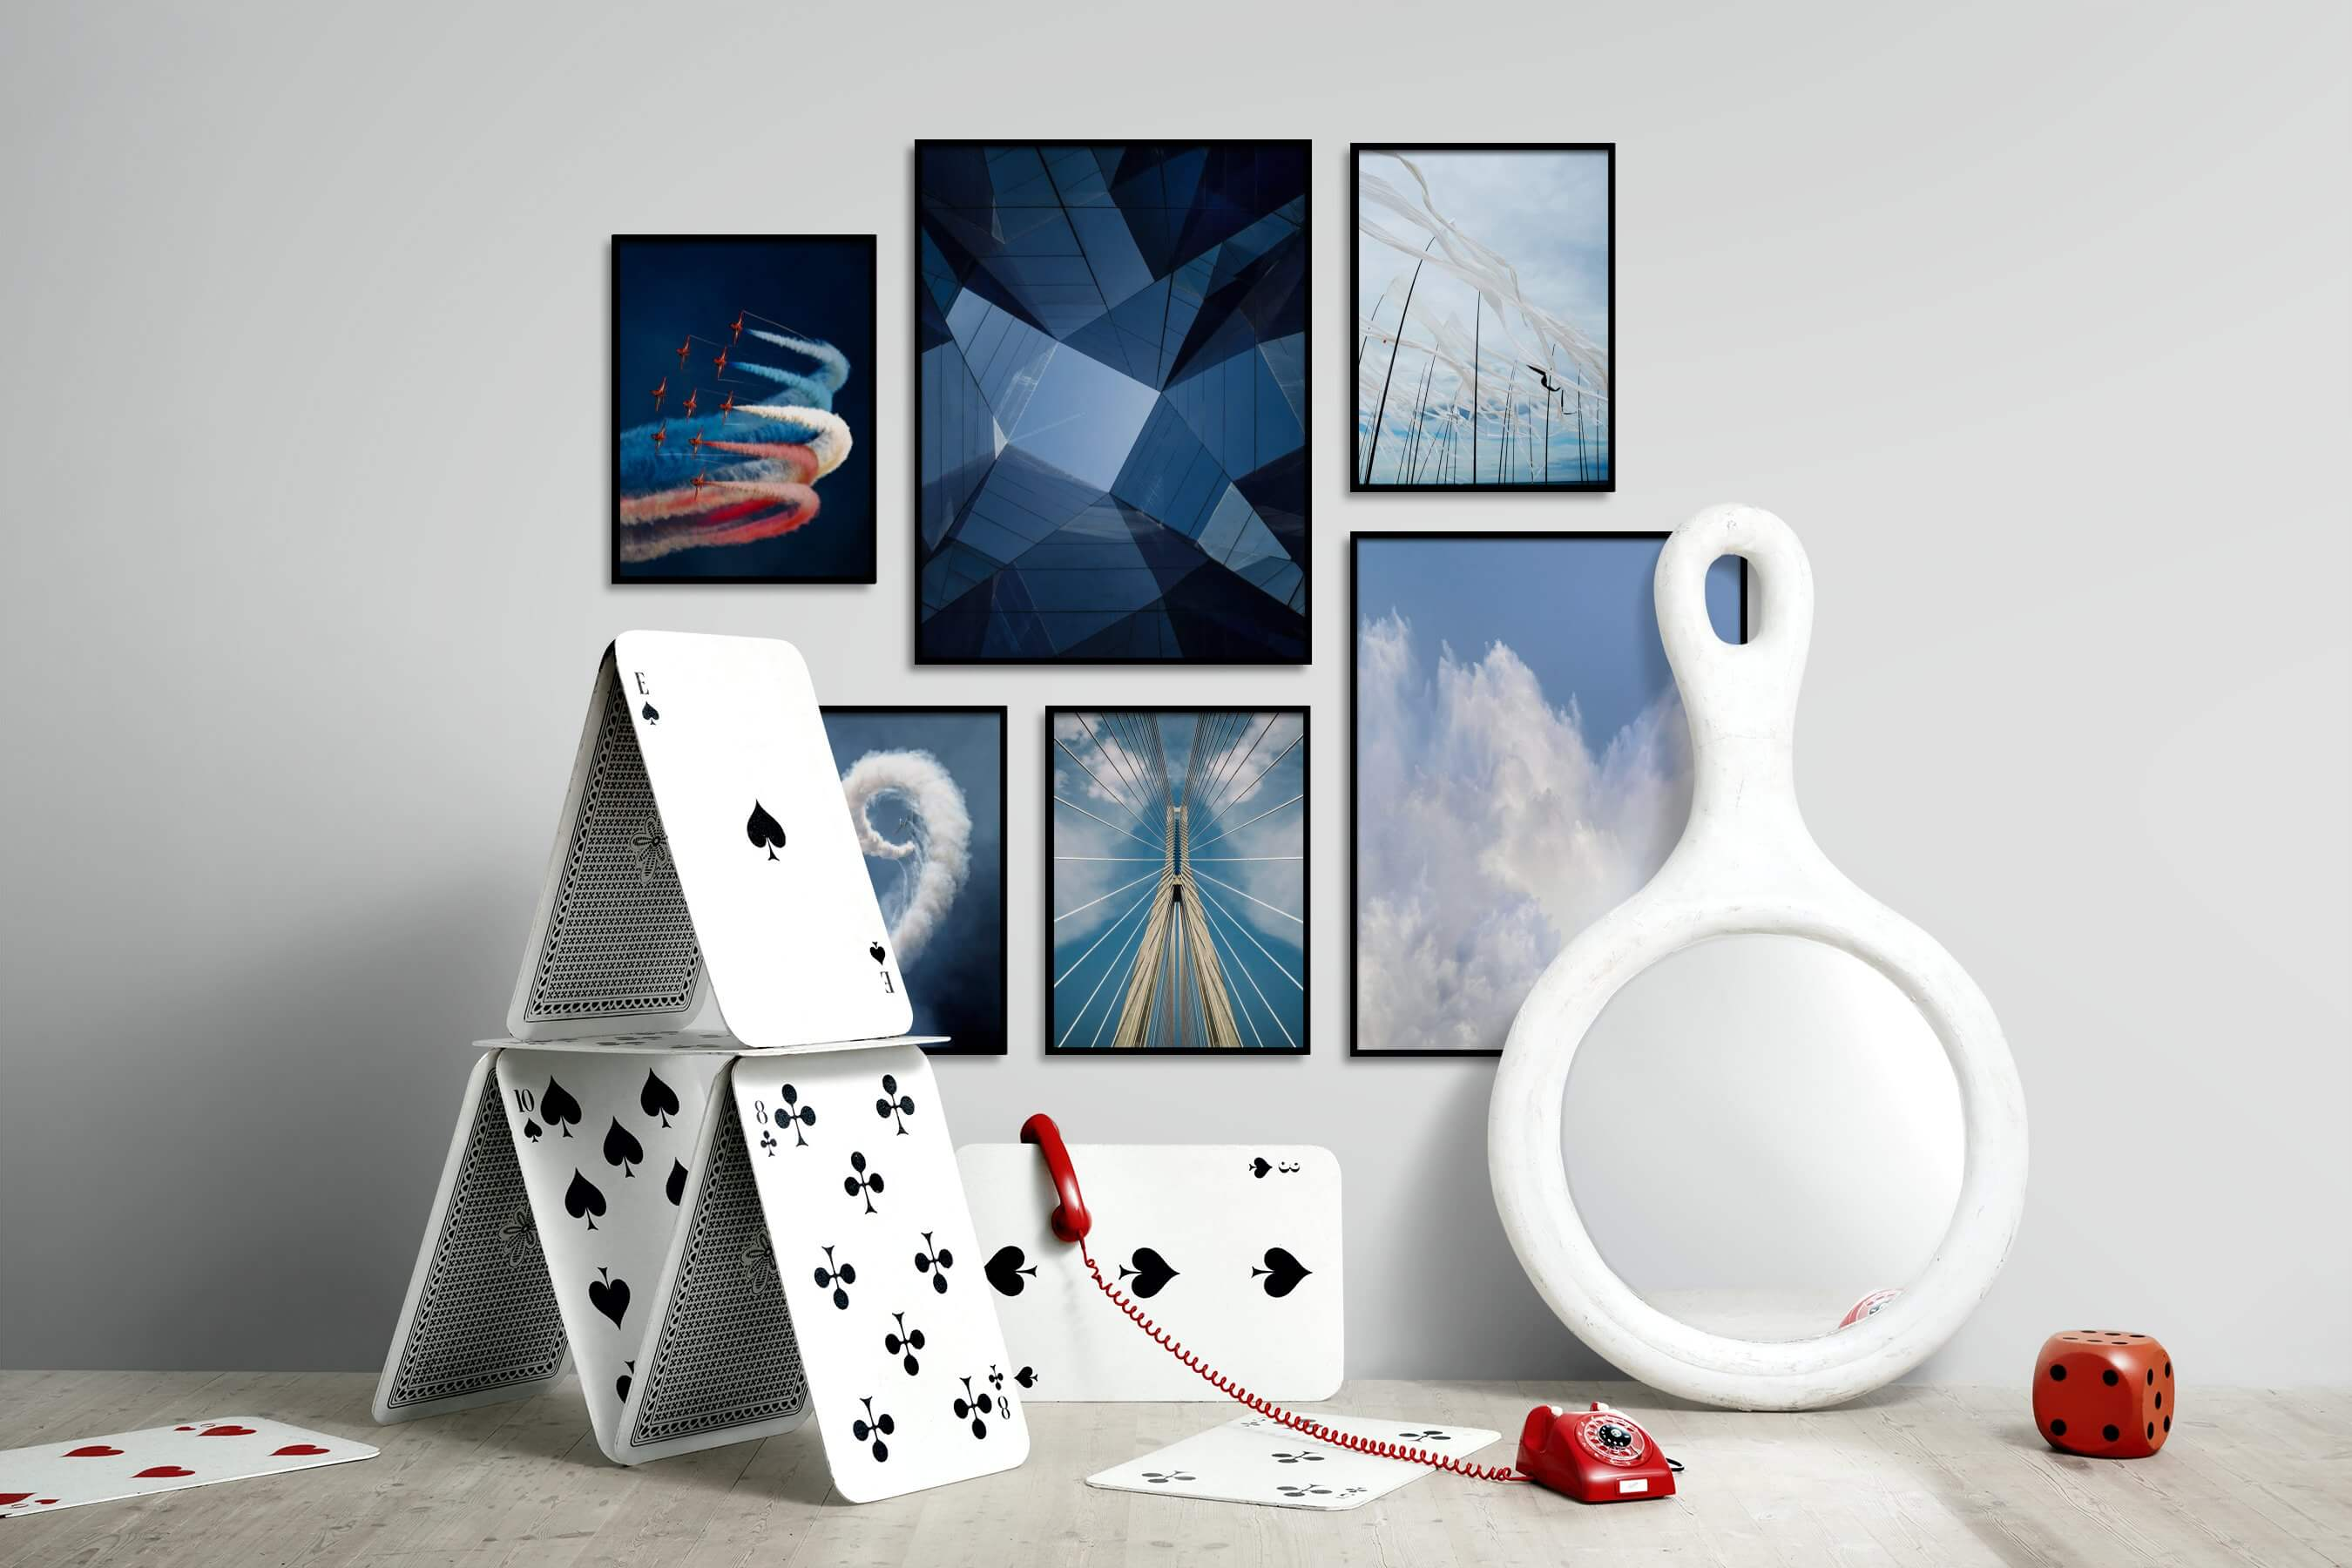 Gallery wall idea with six framed pictures arranged on a wall depicting For the Moderate, For the Maximalist, For the Minimalist, Beach & Water, and Mindfulness